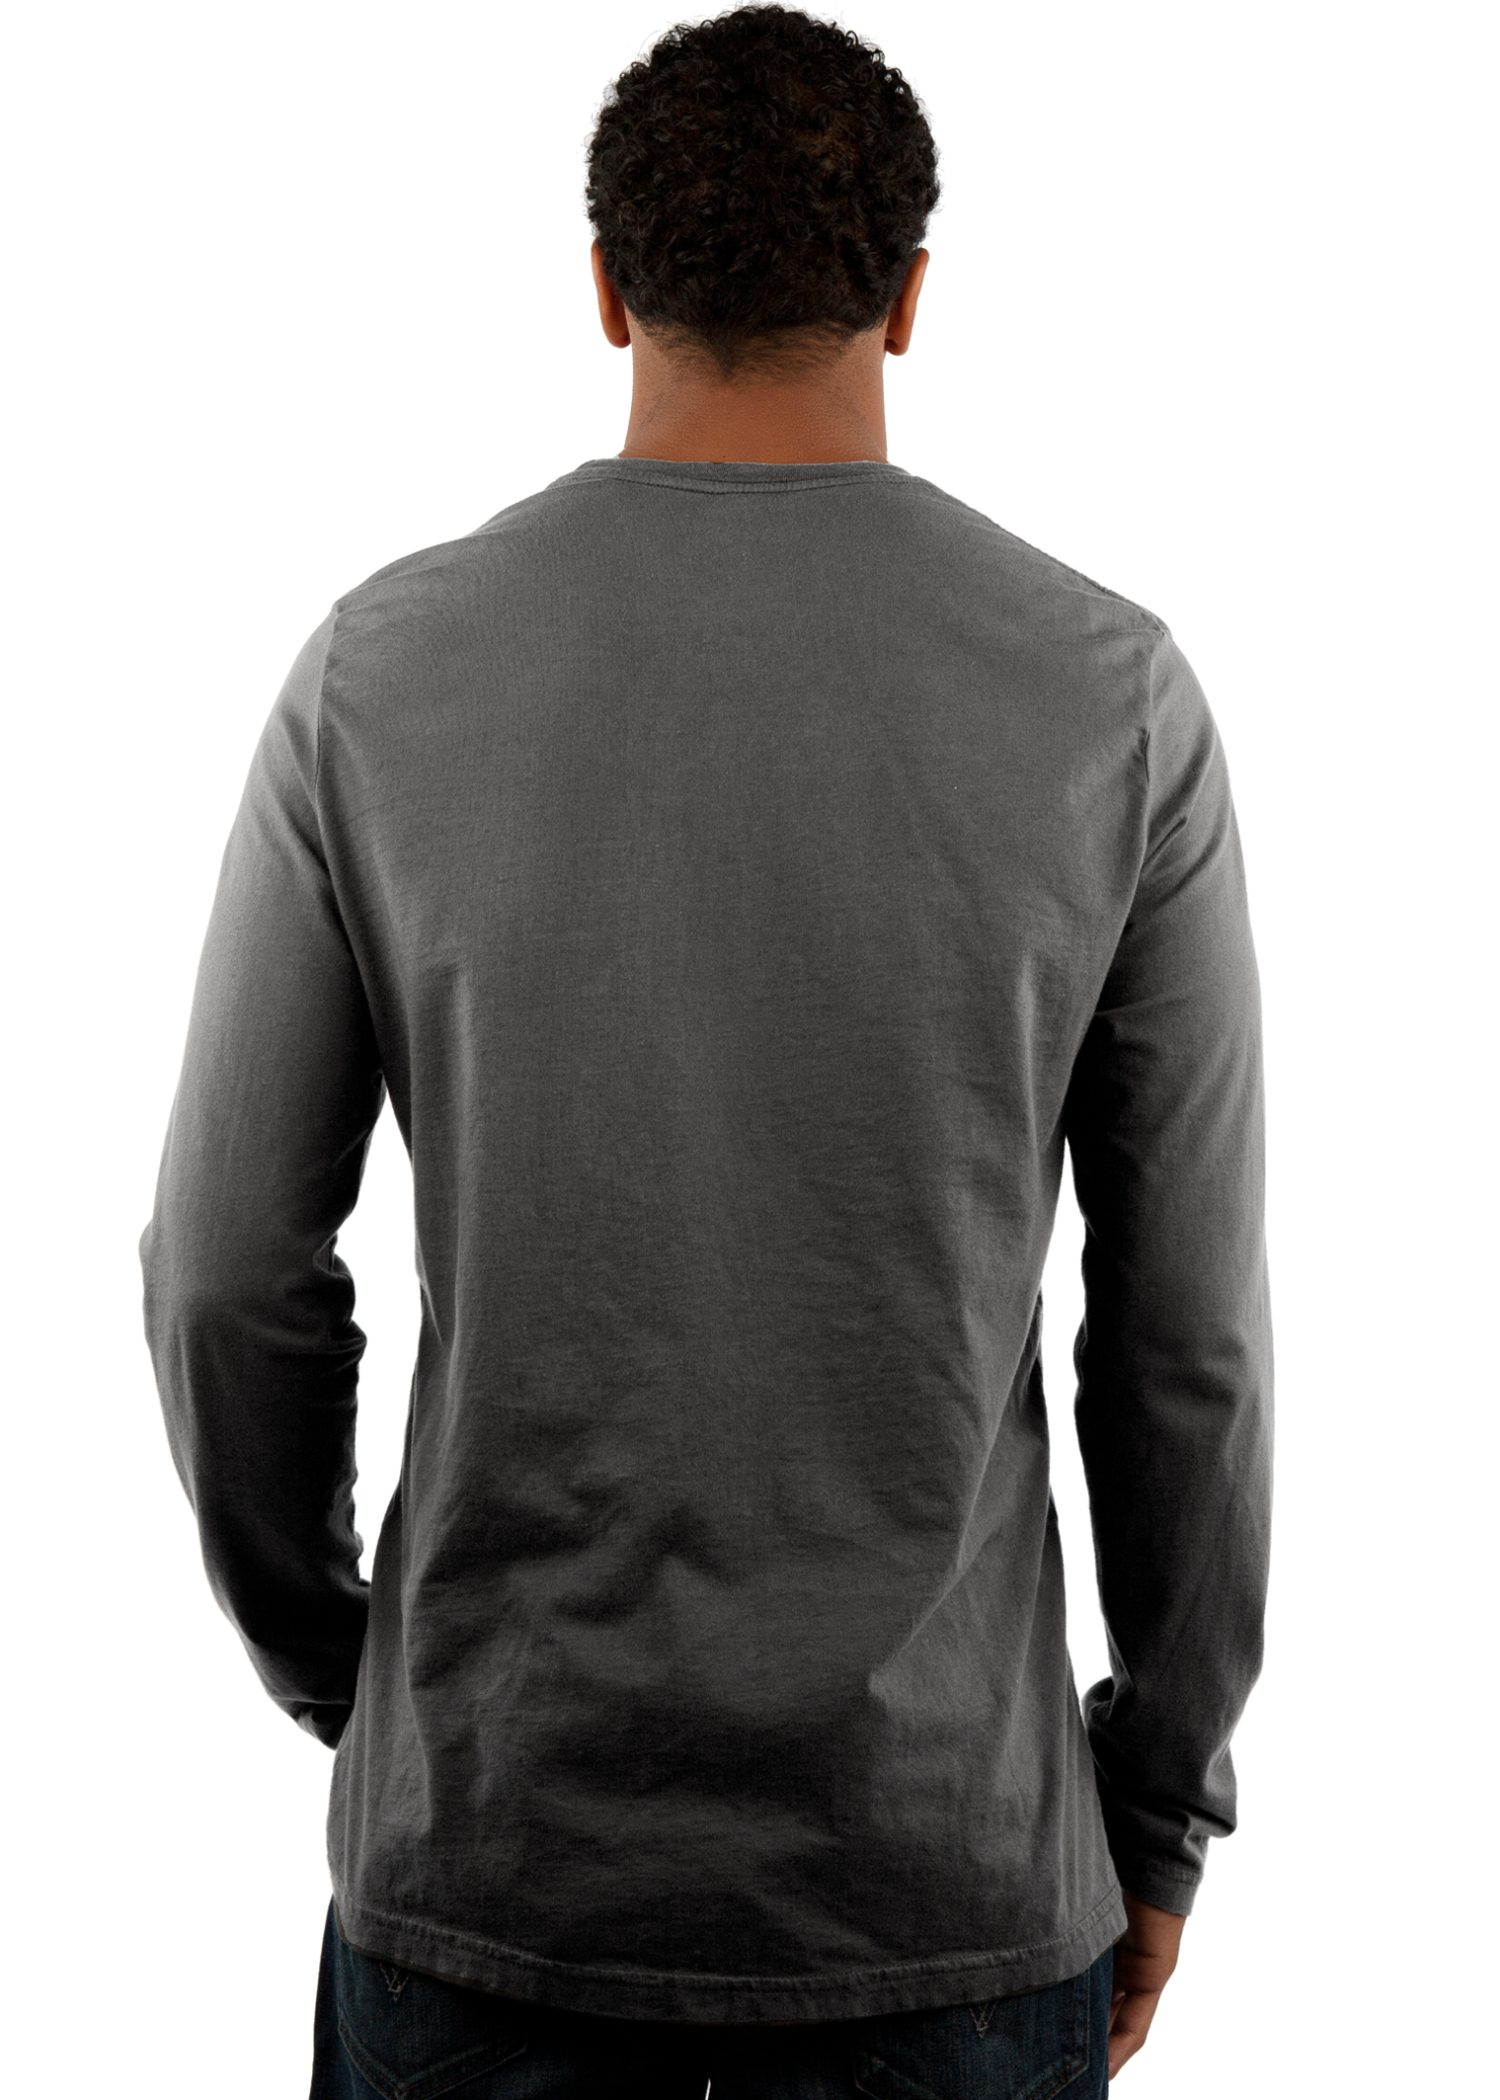 GG 701 Mens Select LS Crew back